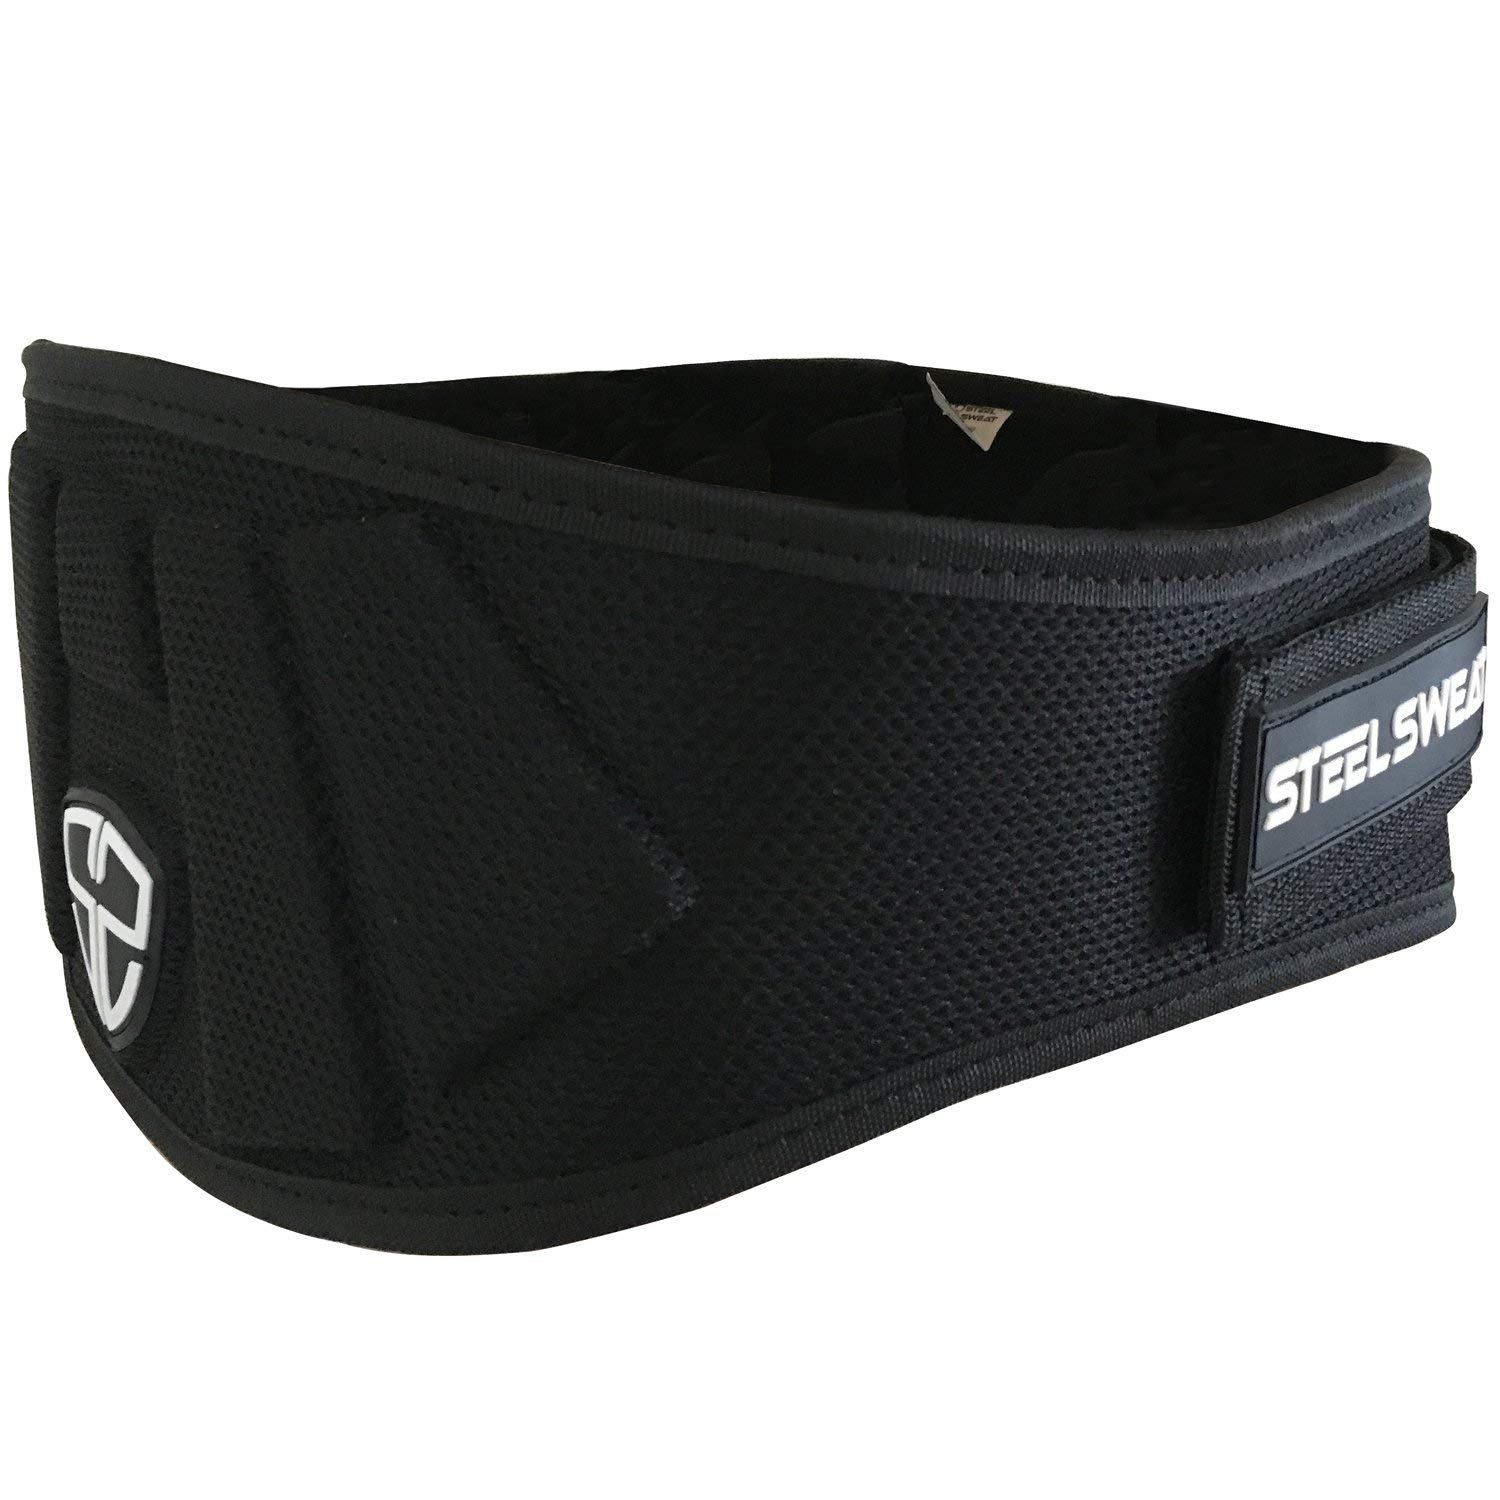 Steel Sweat Weight Lifting Belt - Nylon 6-inch Firm & Comfortable Back Support, Best for Workouts at The Gym, Weightlifting or Crossfit. Easily Adjustable MAXE Black XL